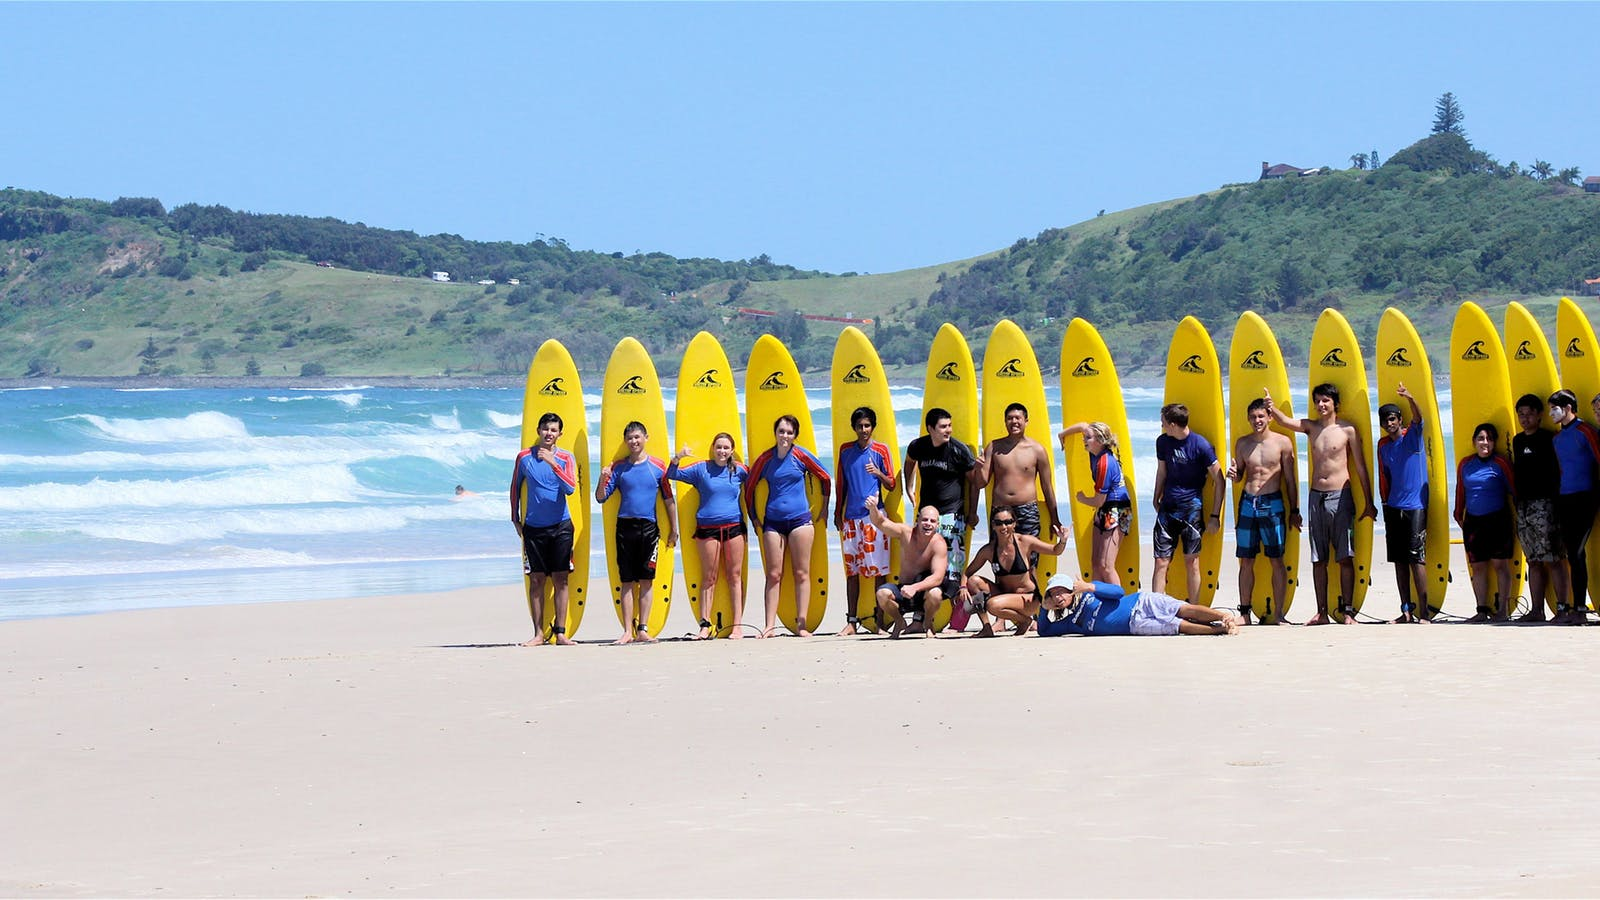 Surfing first lesson easy fun and safe  Equipment supplied  Head Coach World Champion Cheyne Horan